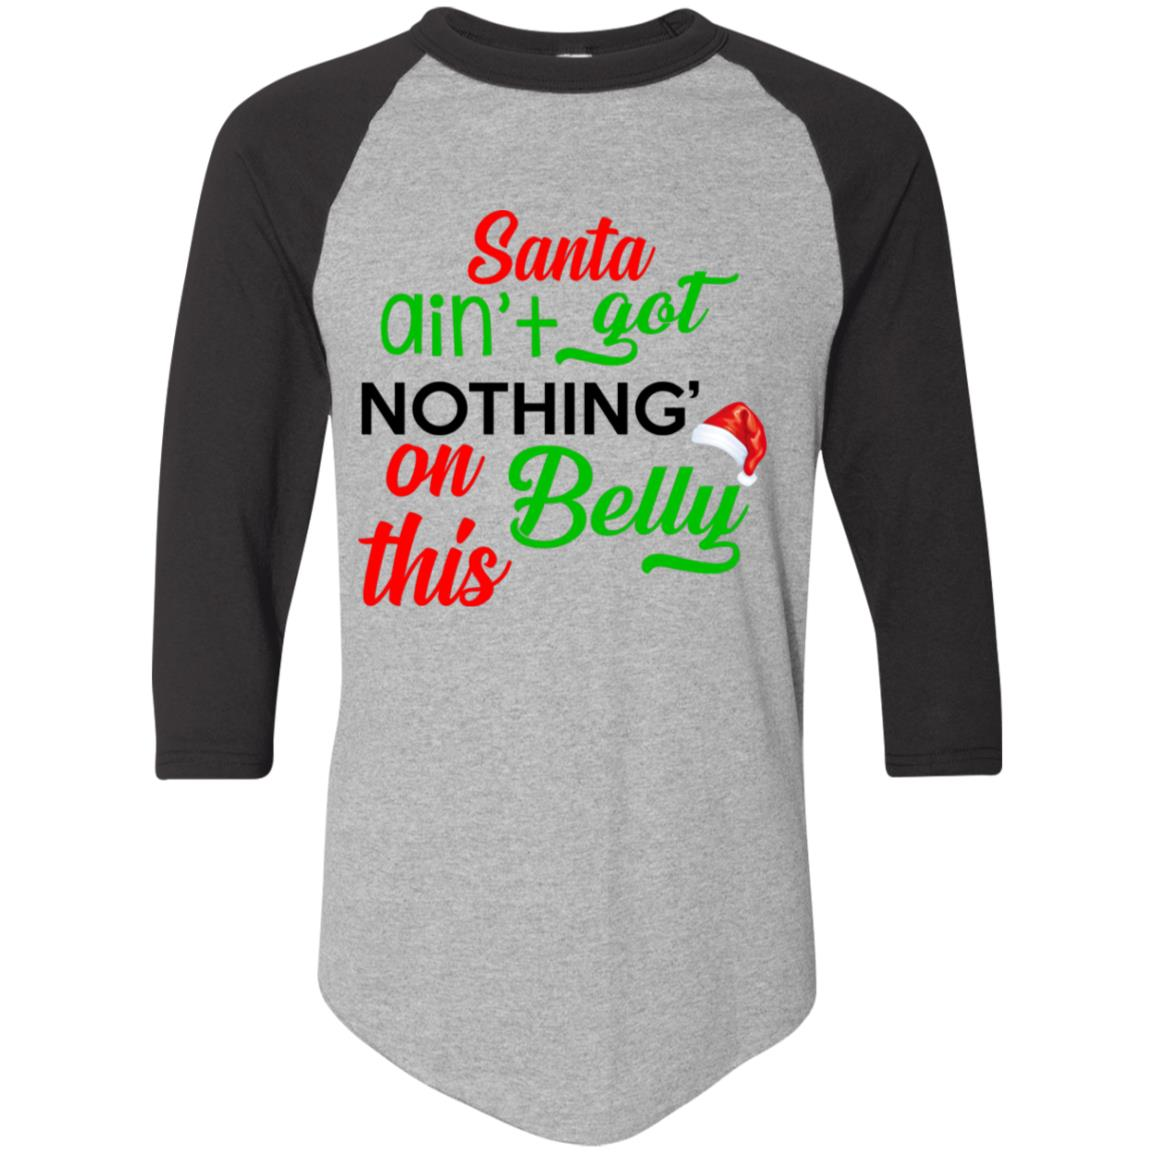 Santa ain't got nothin' on this belly